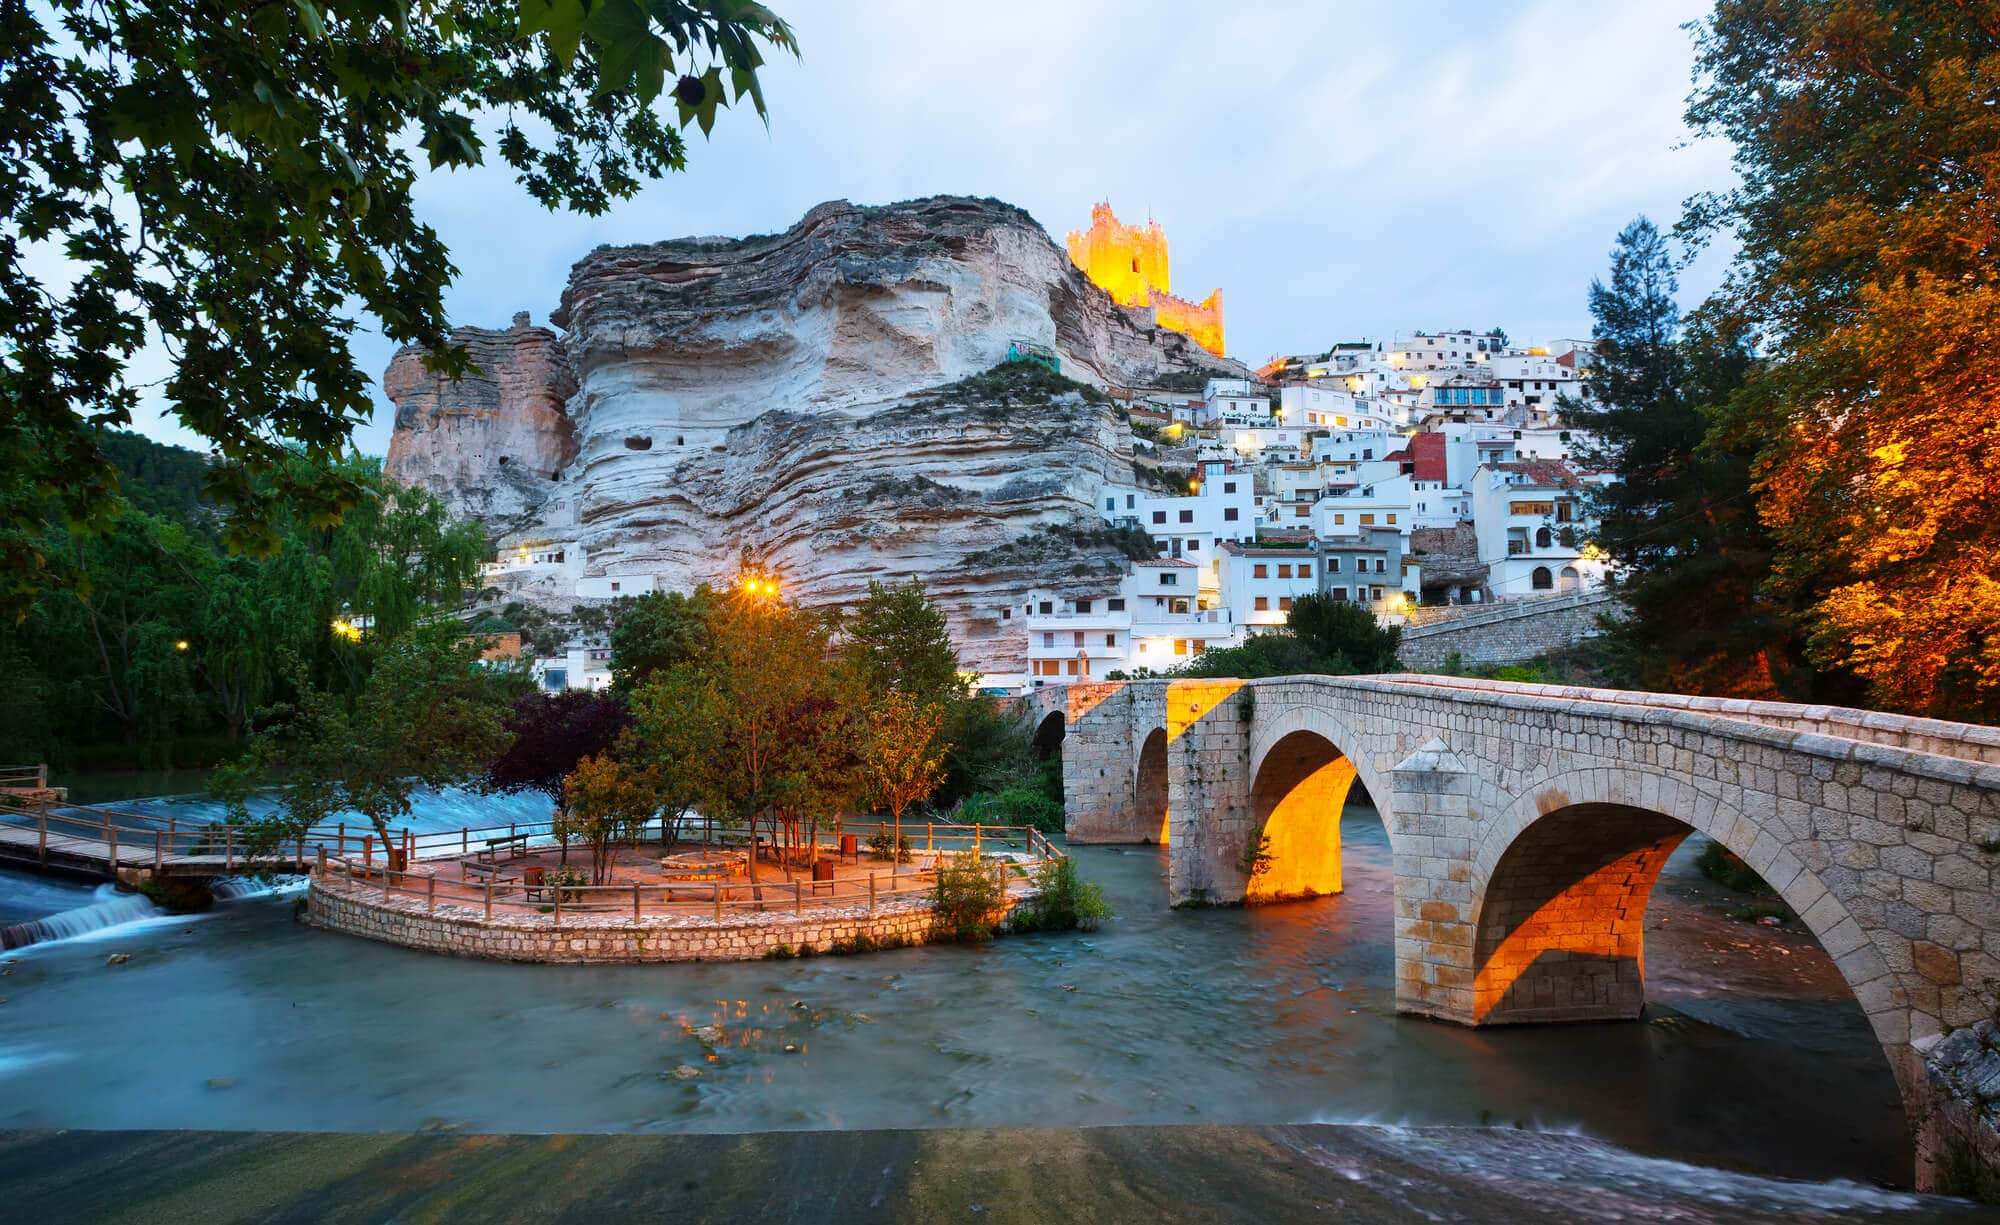 Evening view of a fortress on top of a large rock with white houses built into the rockface and a Roman bridge crossing the river in Alcalá del Júcar - A hidden gem in Spain that still feels like a secret